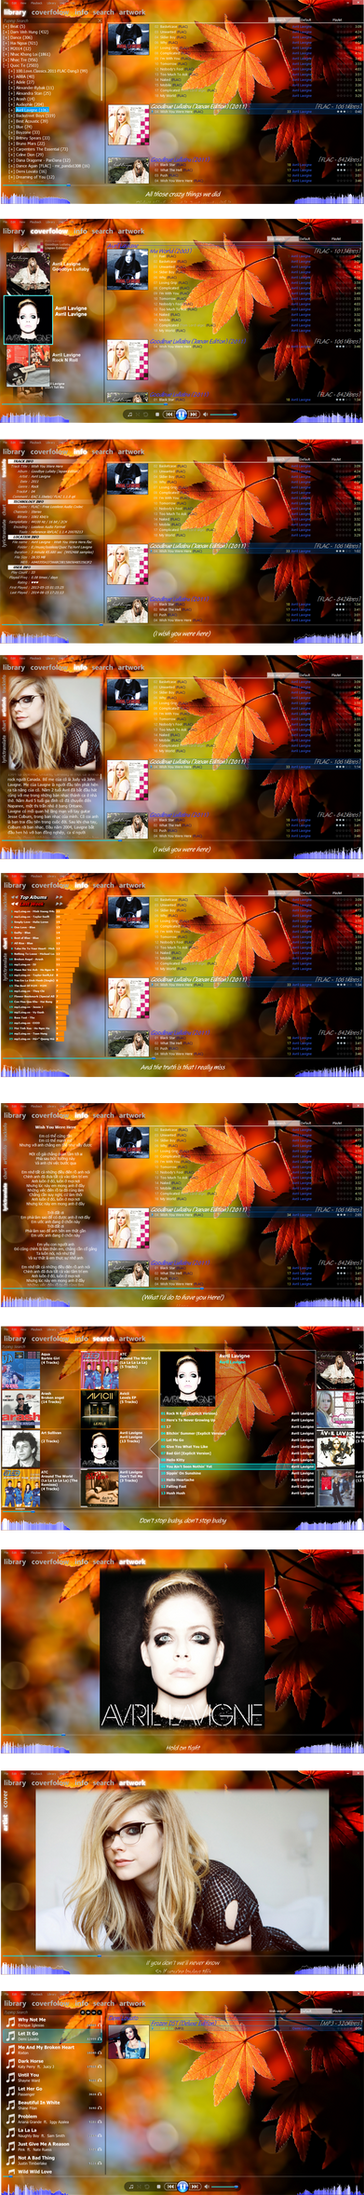 my skin foobar preview.